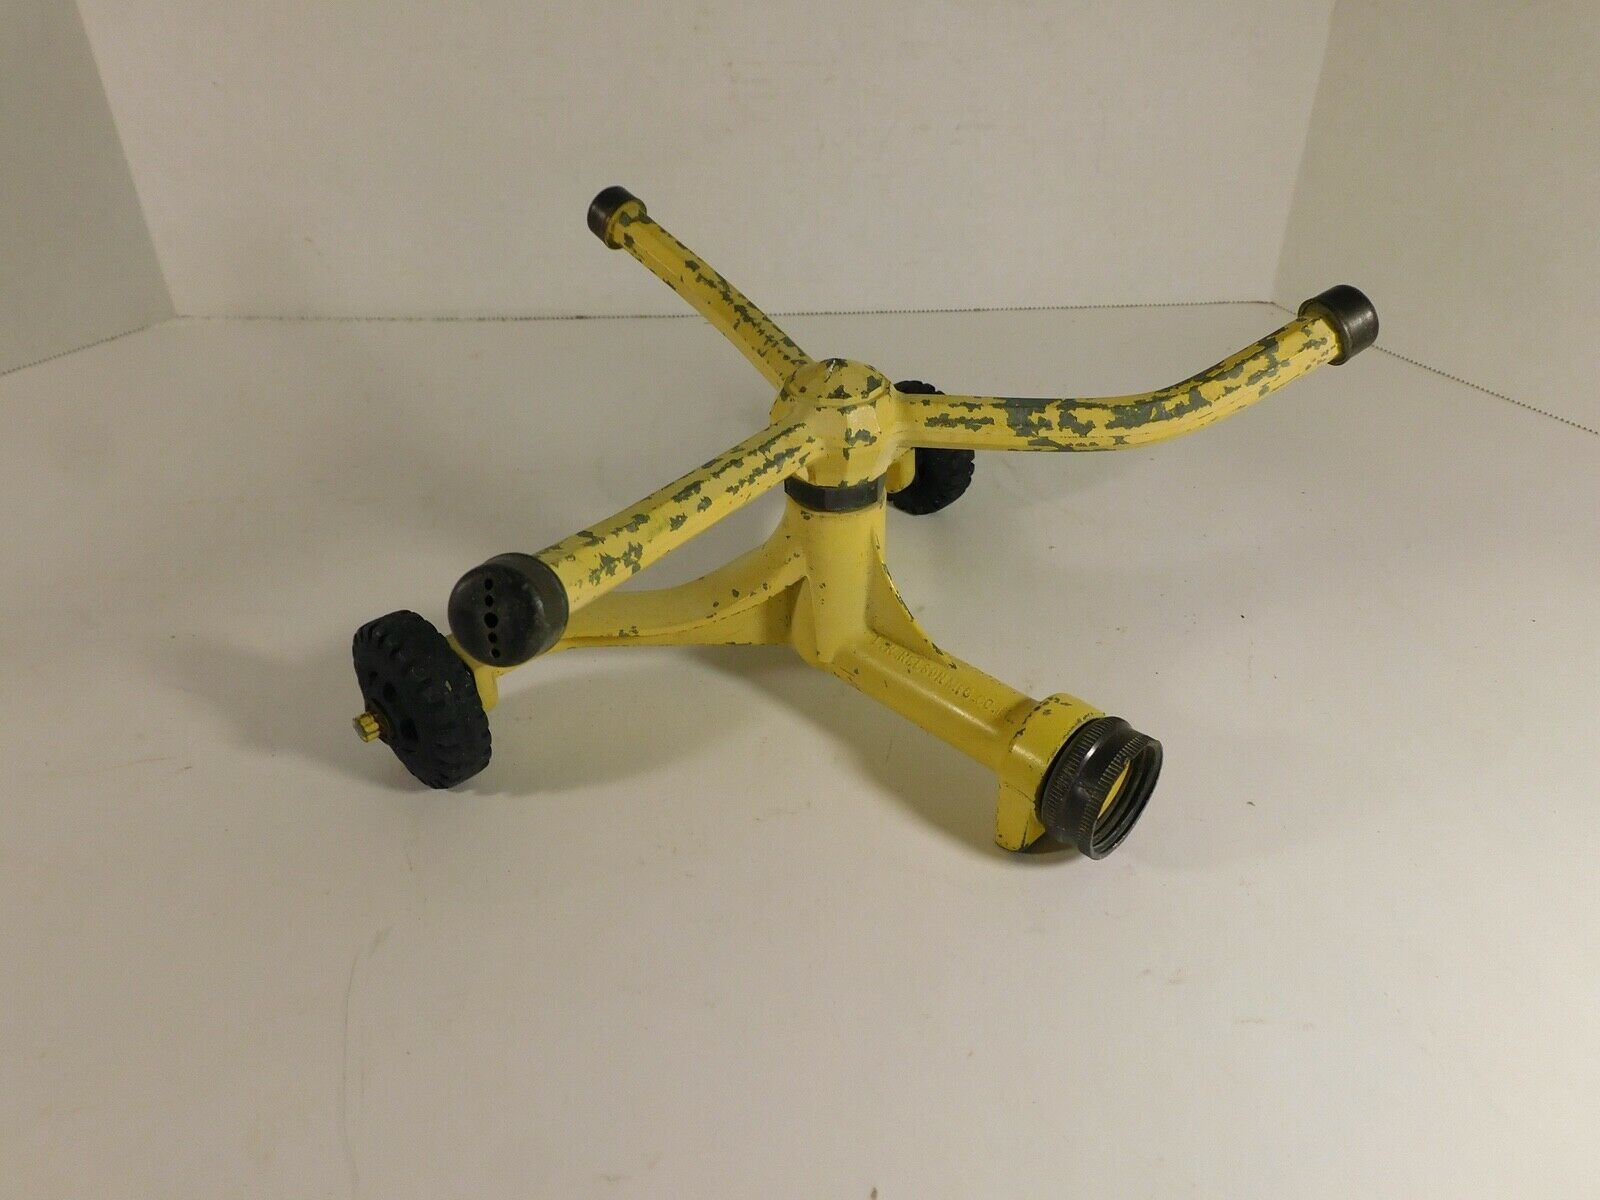 Vintage Nelson 3 Arm Spinning Rotating Lawn Sprinkler Yellow - Works